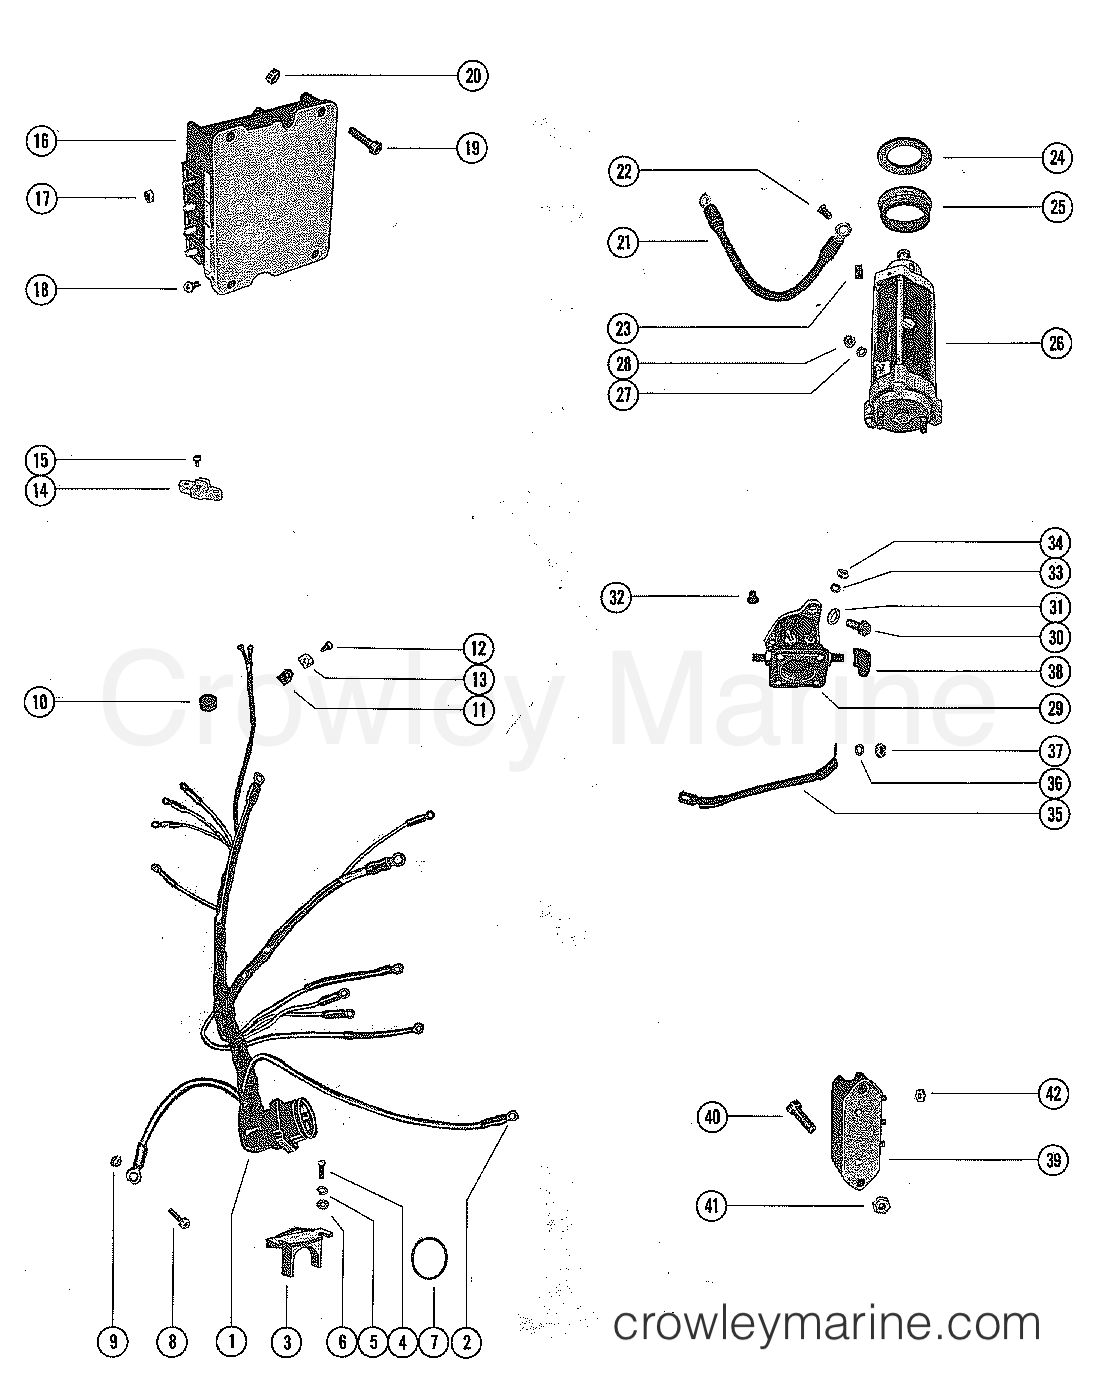 2000 f350 wiring harness   24 wiring diagram images